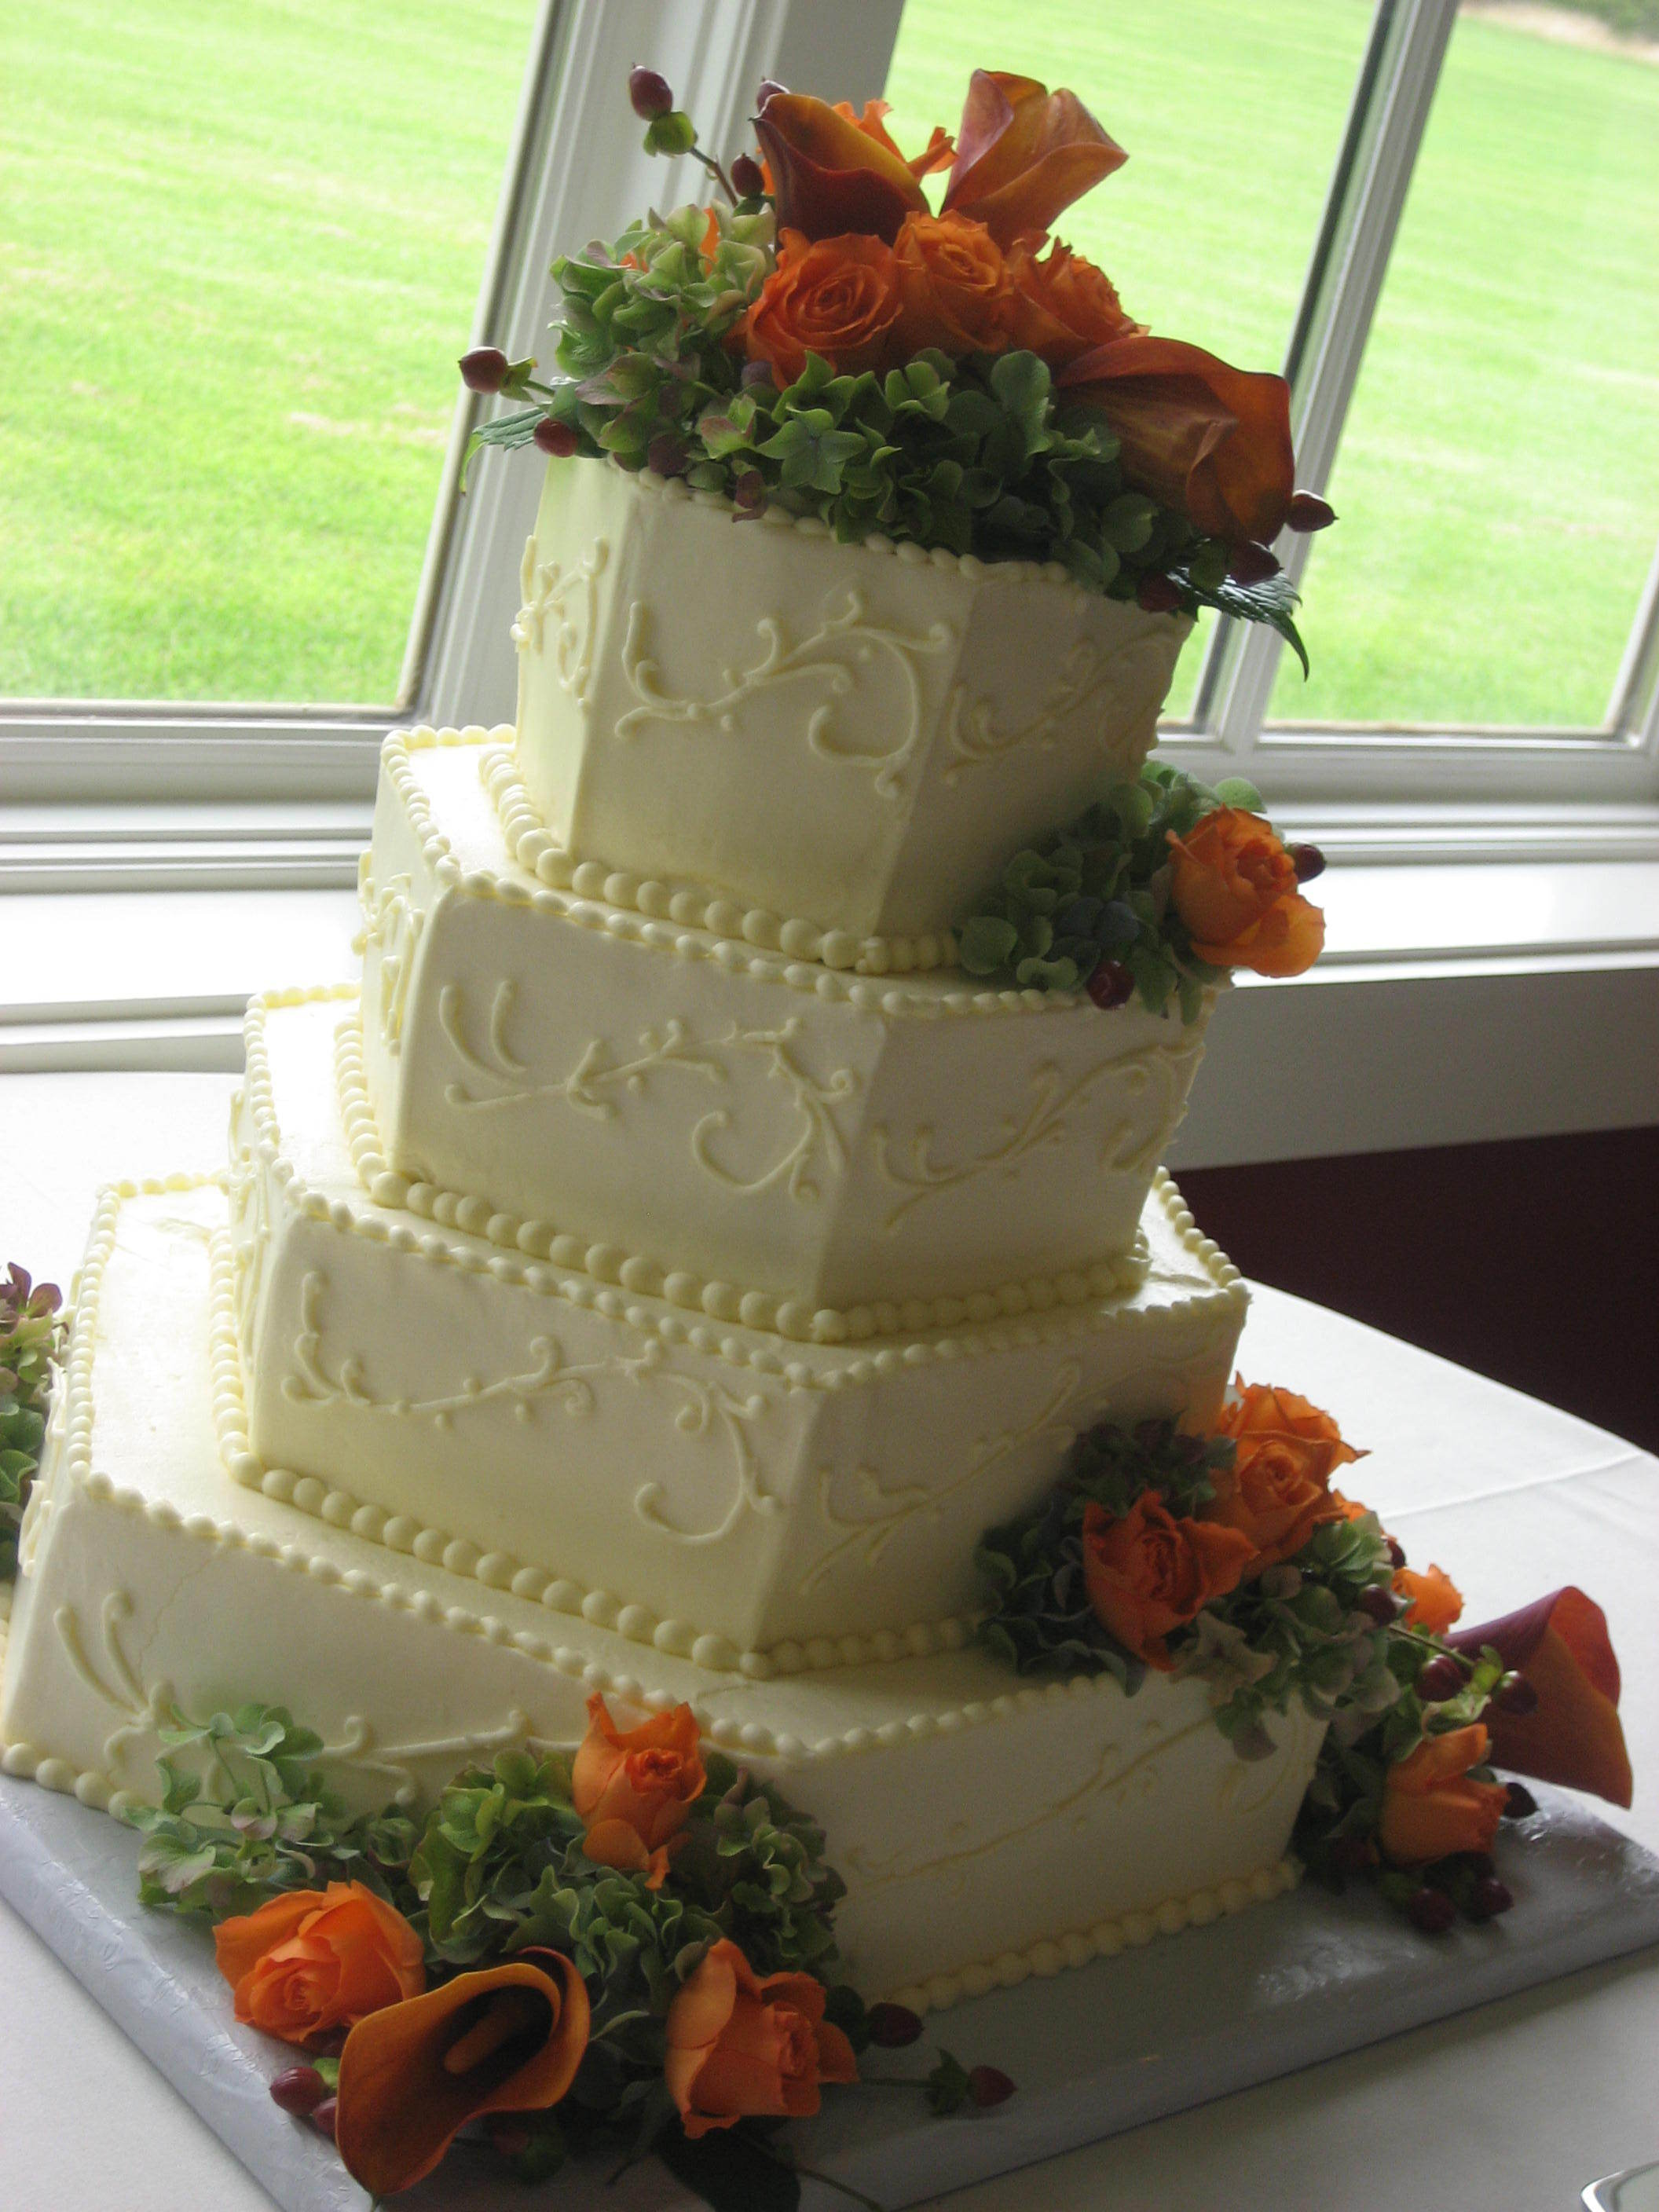 Flowers & Decor, Cakes, cake, Vineyard, Vineyard Wedding Cakes, Wedding, Family, King, Cakes unlimited